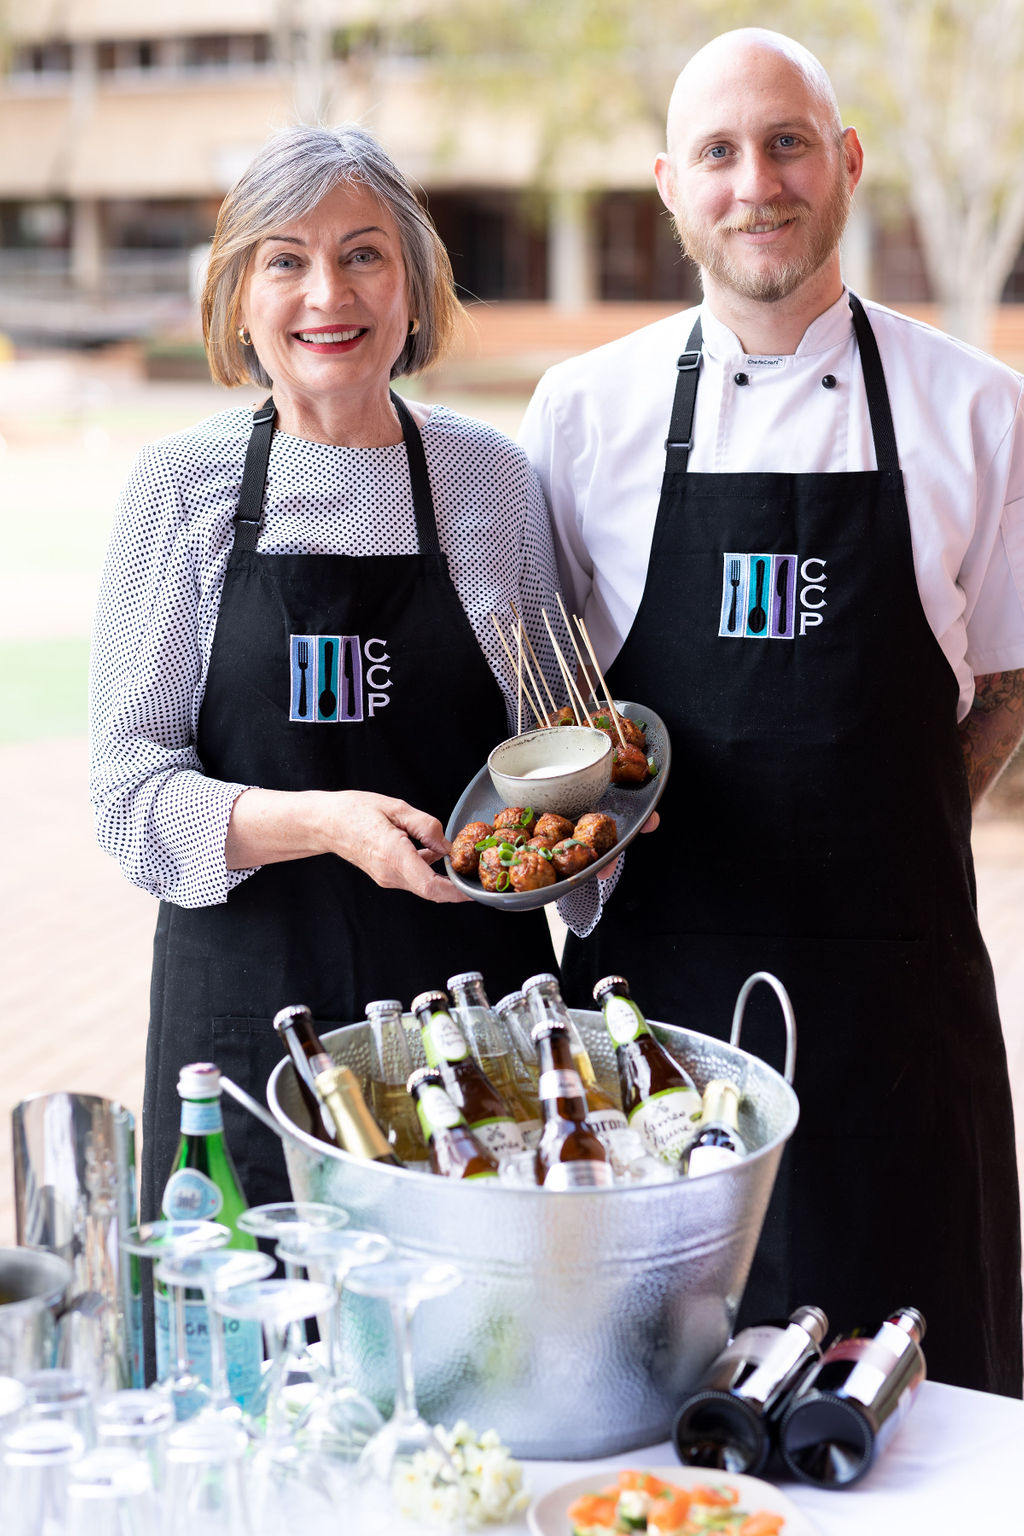 Catering Toowoomba Man and Woman holding food and drinks